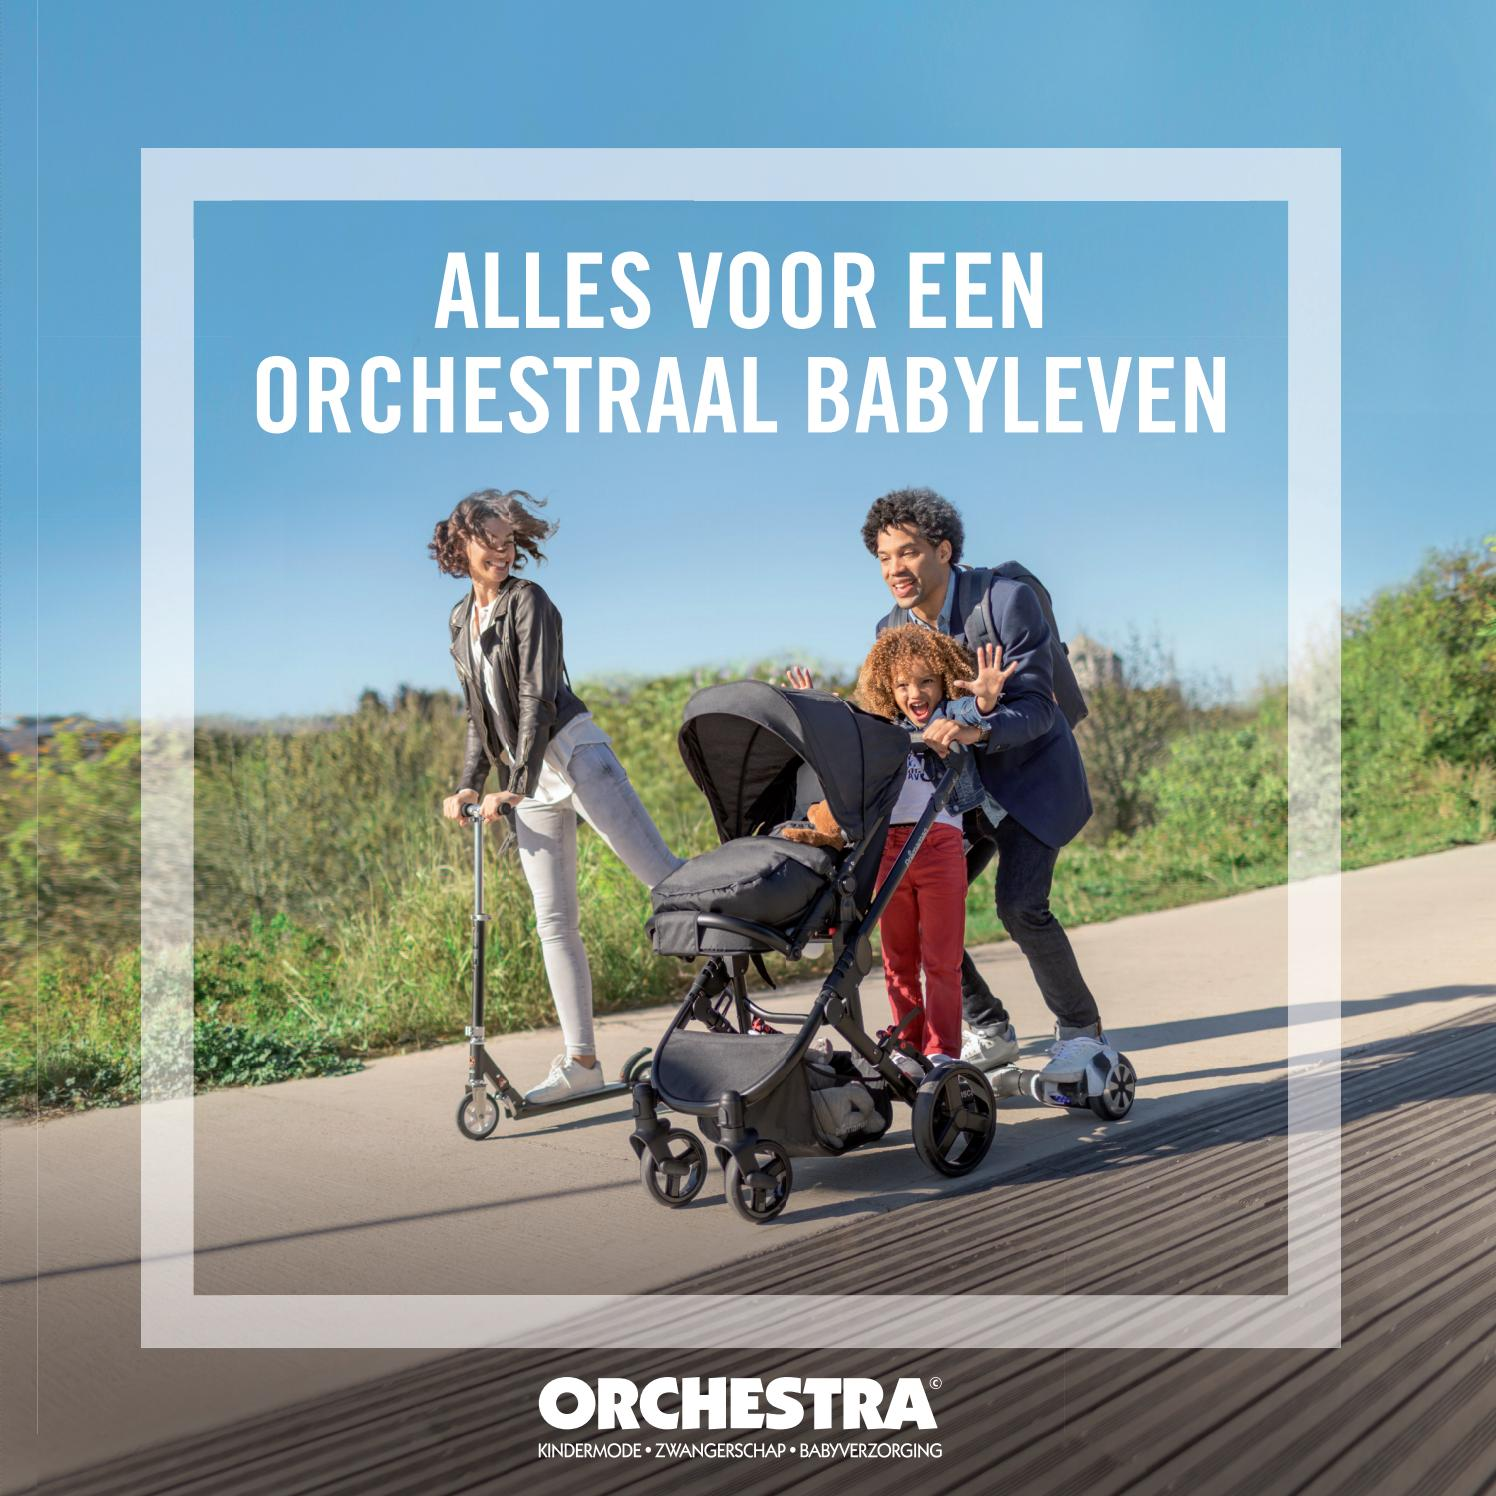 Chicco Sprekende Keuken Catalogus Orchestra 2018 Nederlands By Orchestra Issuu